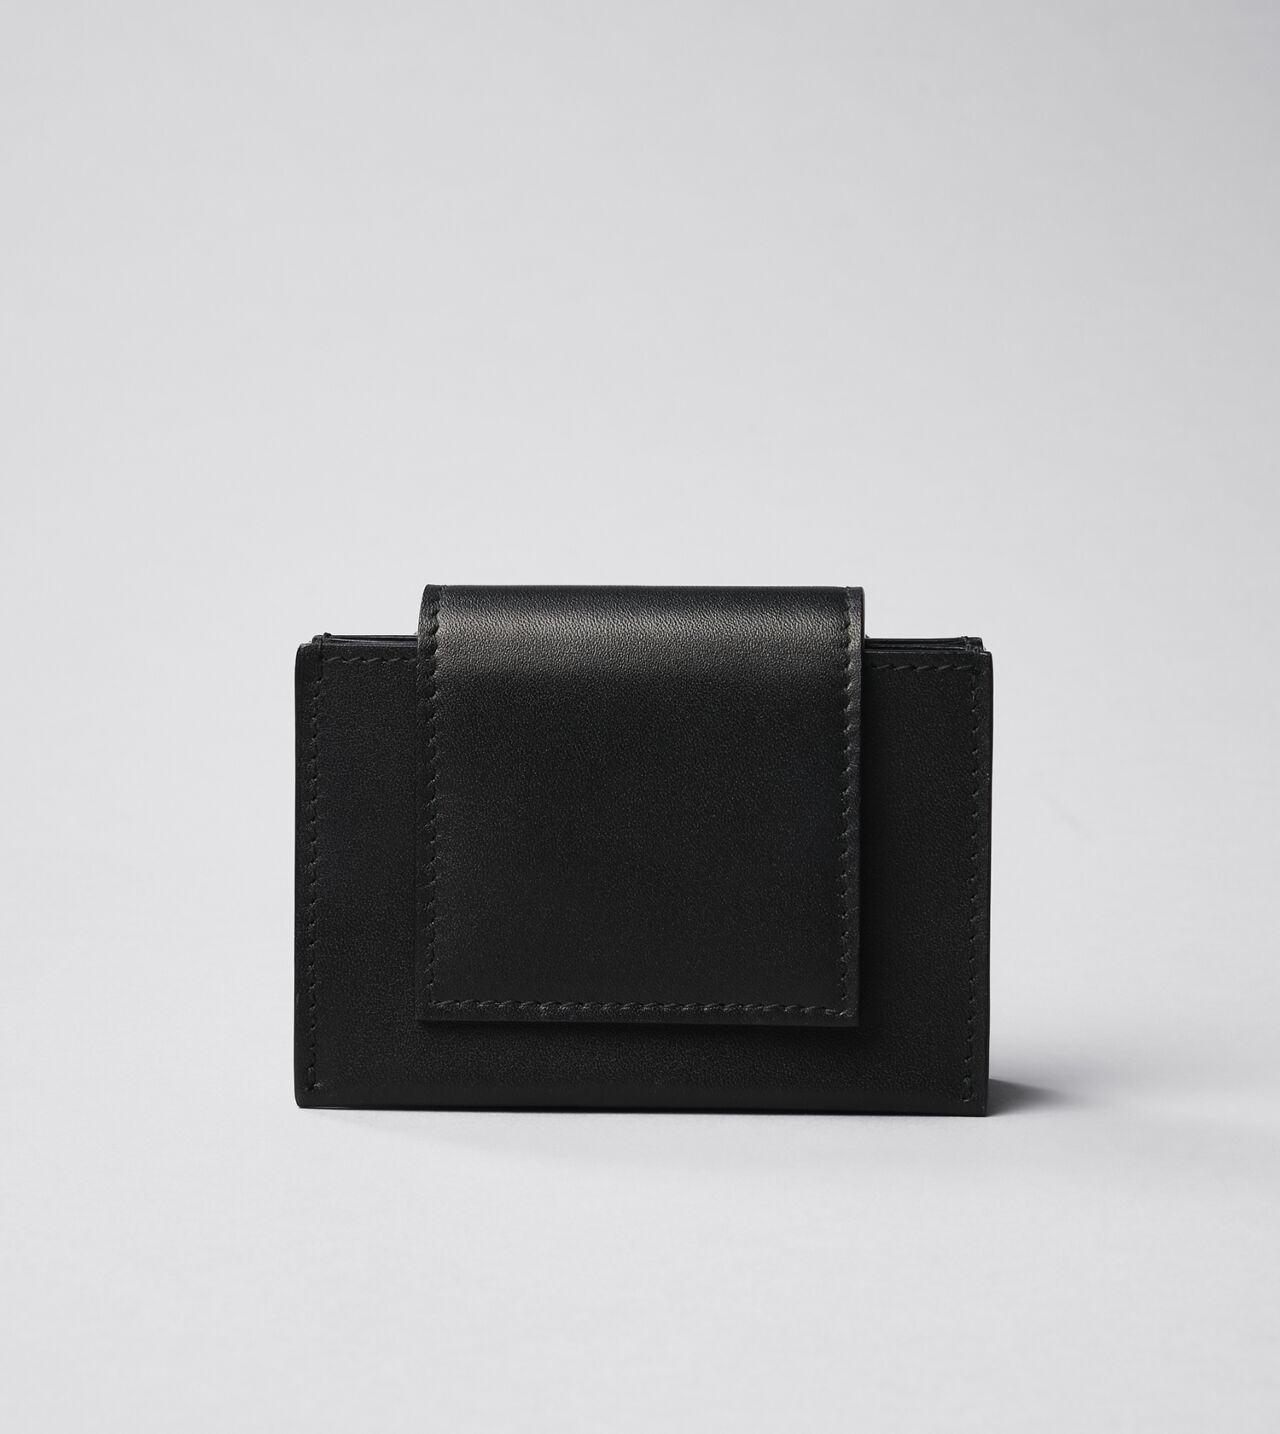 Picture of Byredo Umbrella Wallet in Black leather